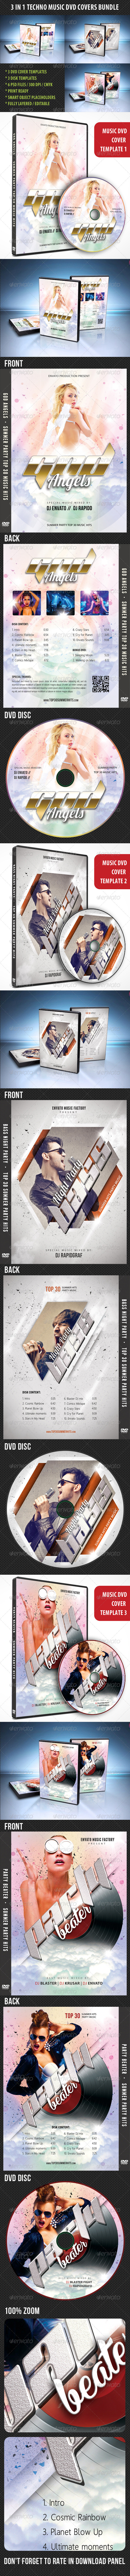 GraphicRiver 3 in 1 Music DVD Covers Bundle 03 8199007